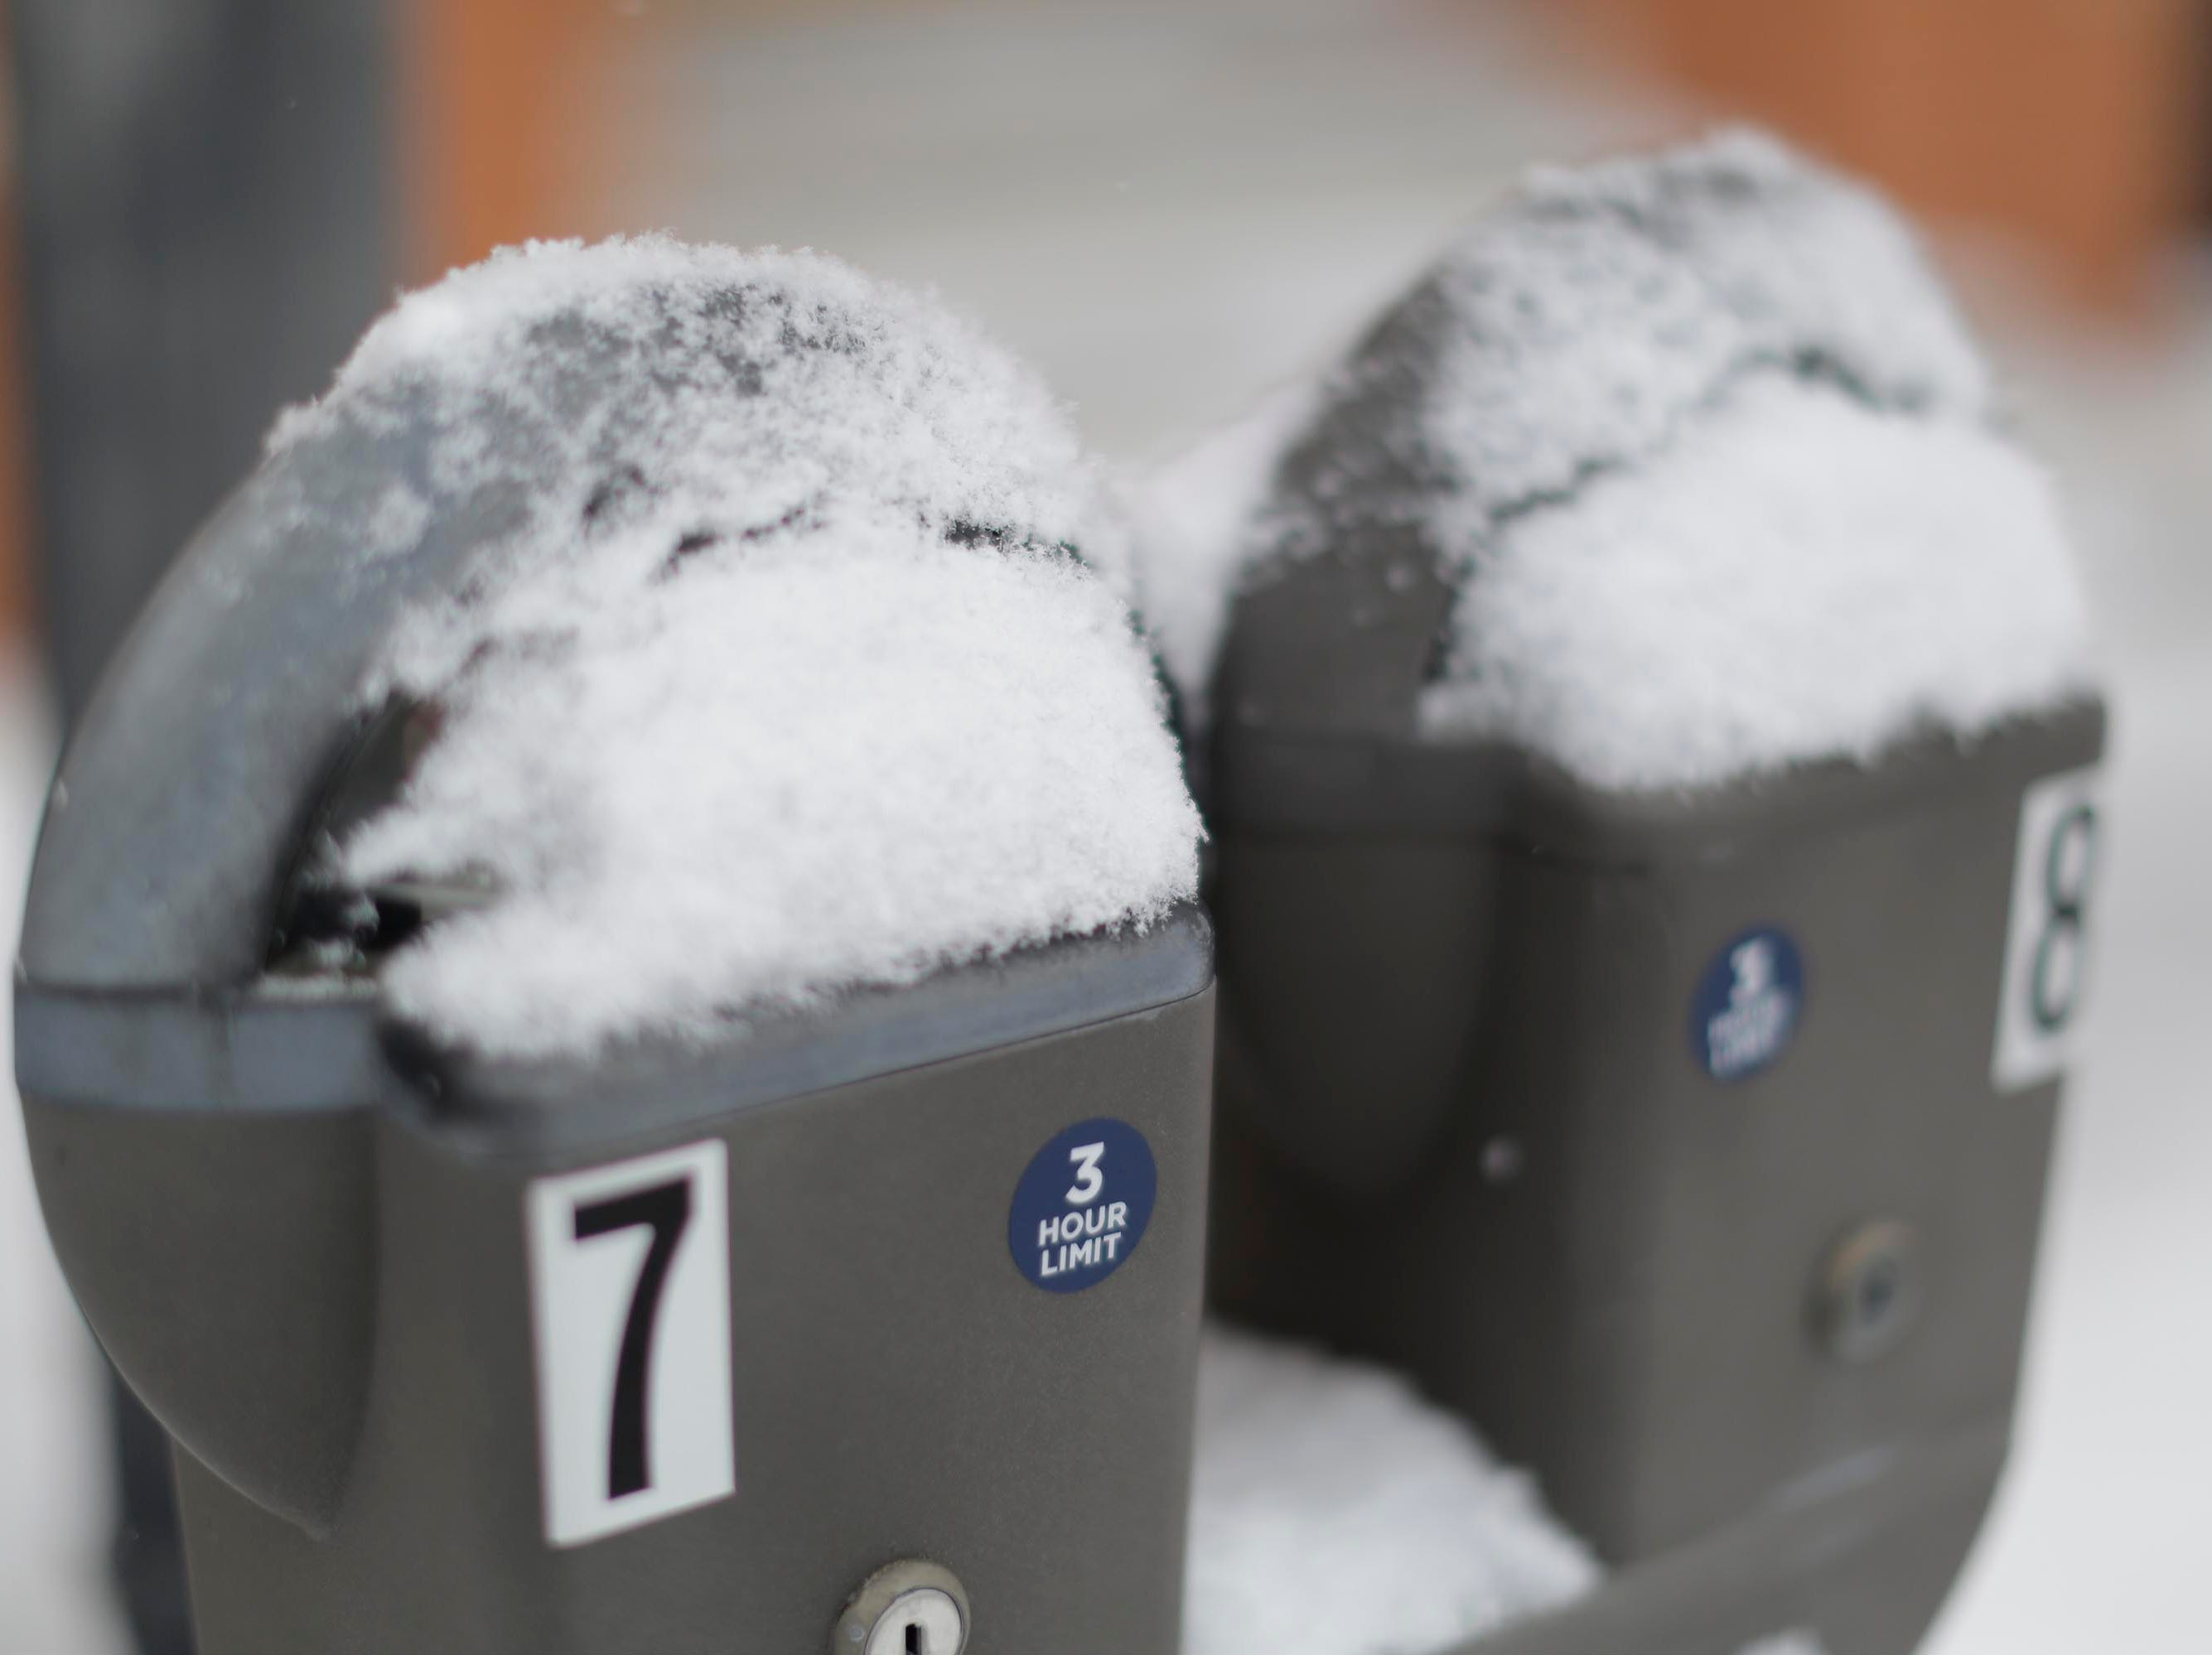 Parking meters in downtown Sheboygan feature a jacket of snow, Wednesday, February 27, 2019, in Sheboygan, Wis.